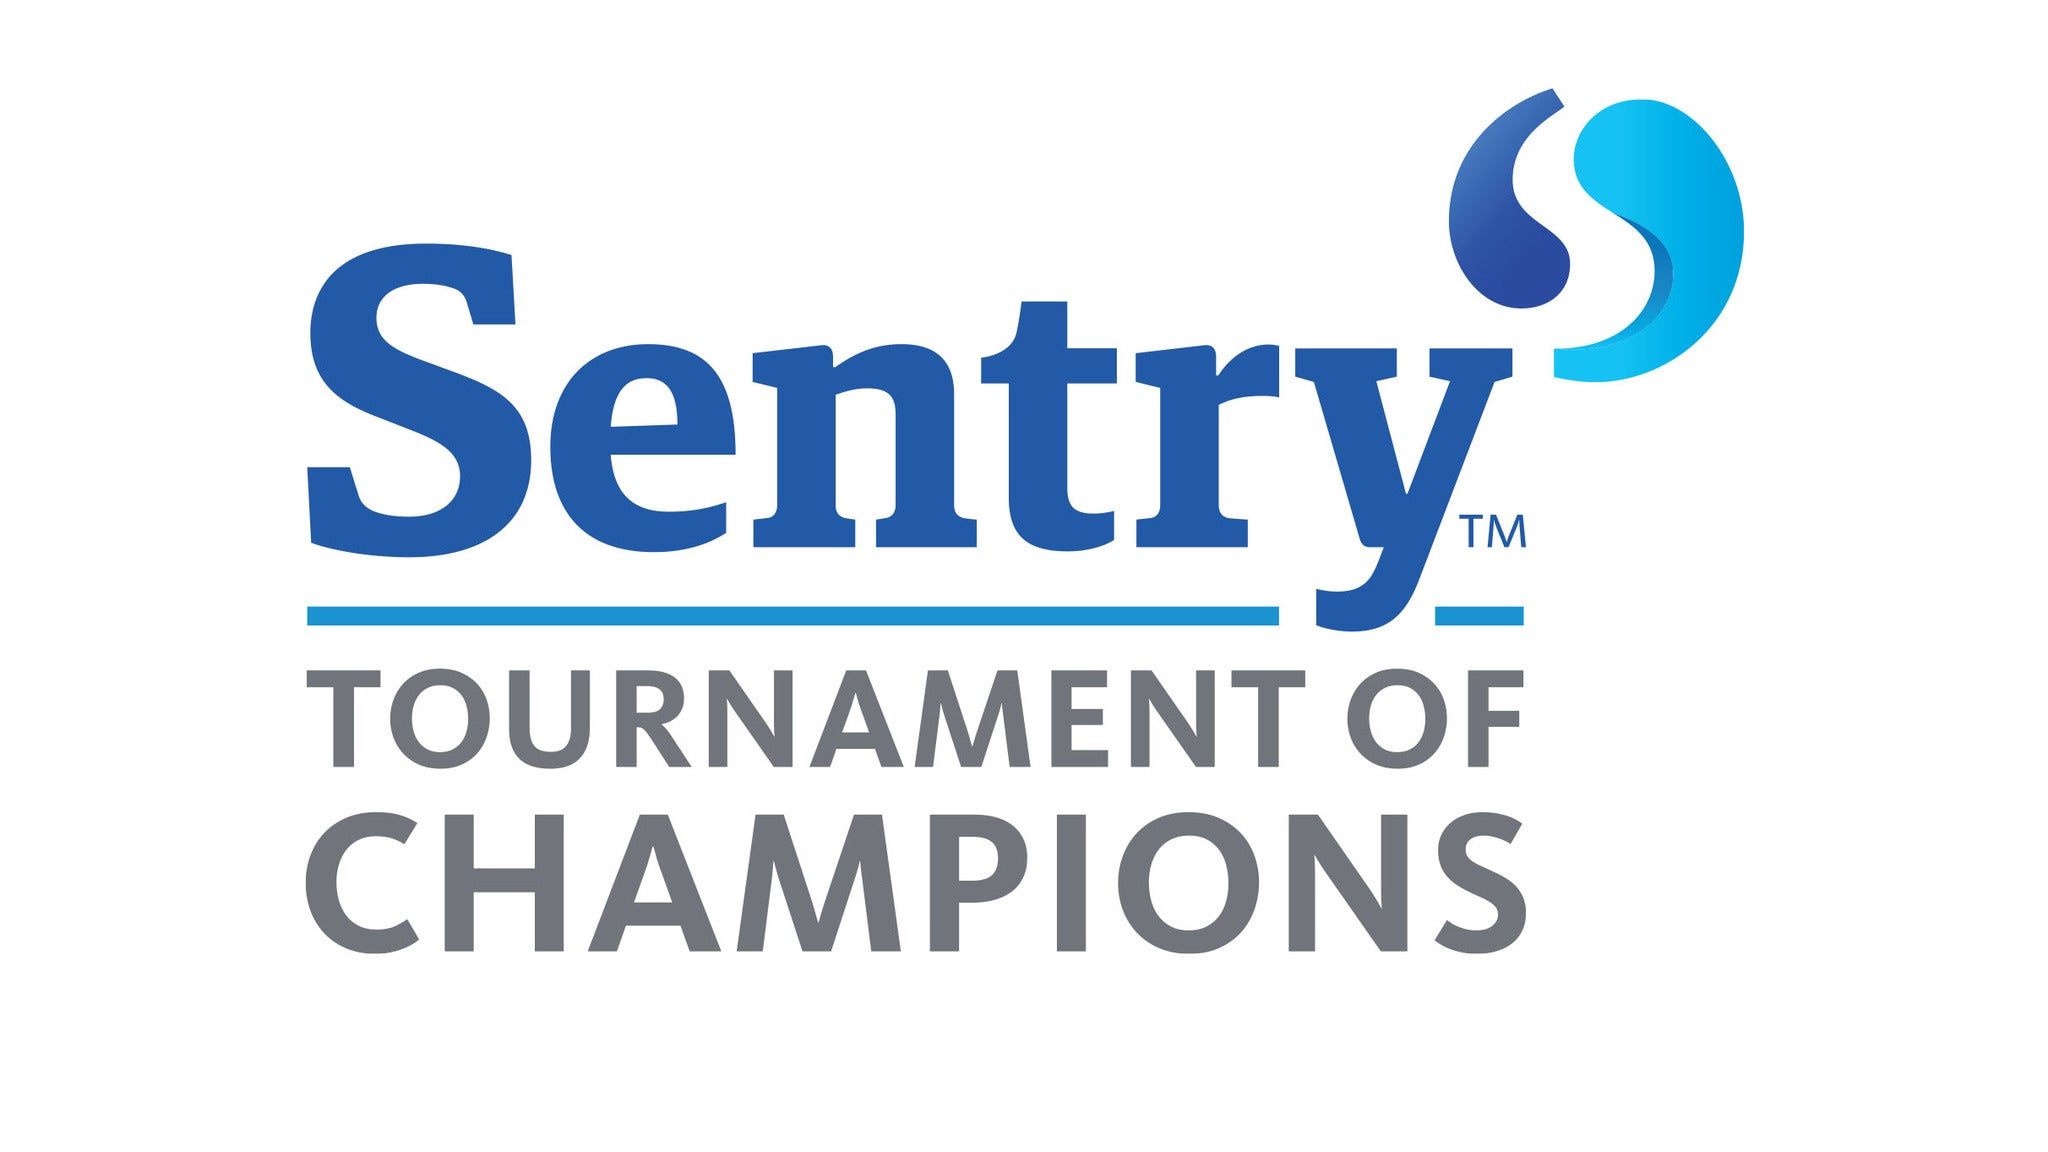 Sentry Tournament of Champions - Good Any One Day